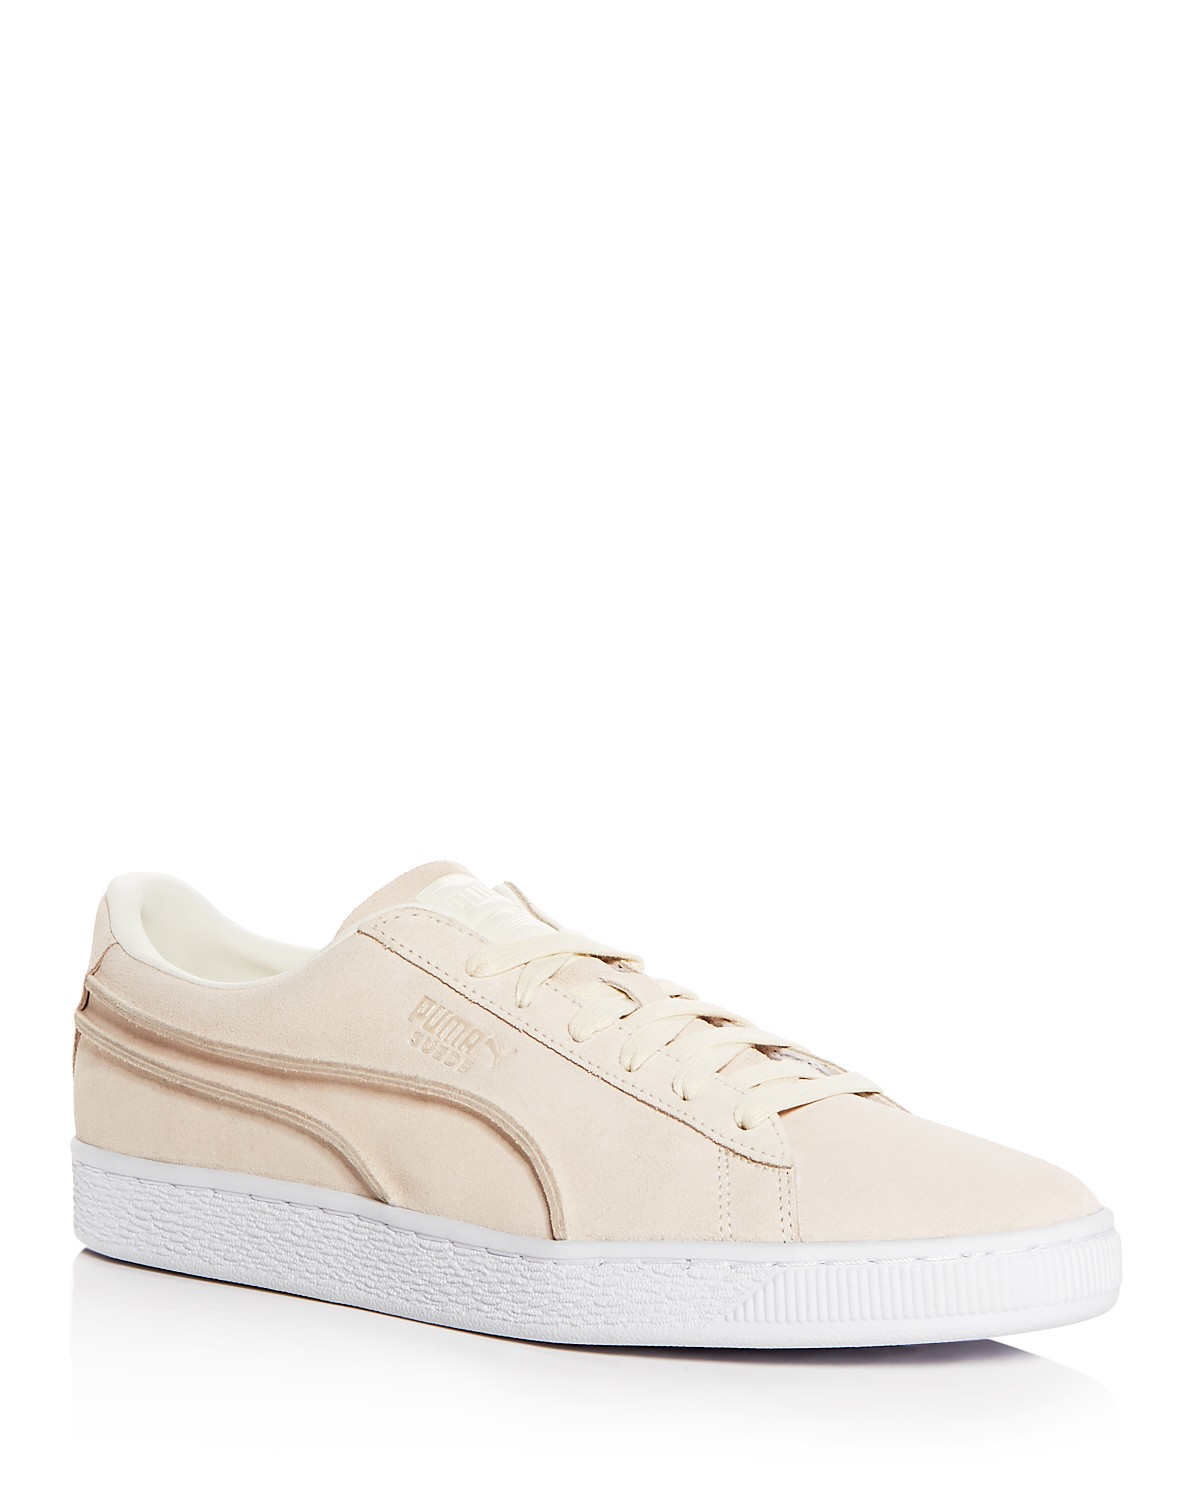 Puma Men's Classic Exposed Seams Suede Lace Up Sneakers I6J3LwFz4